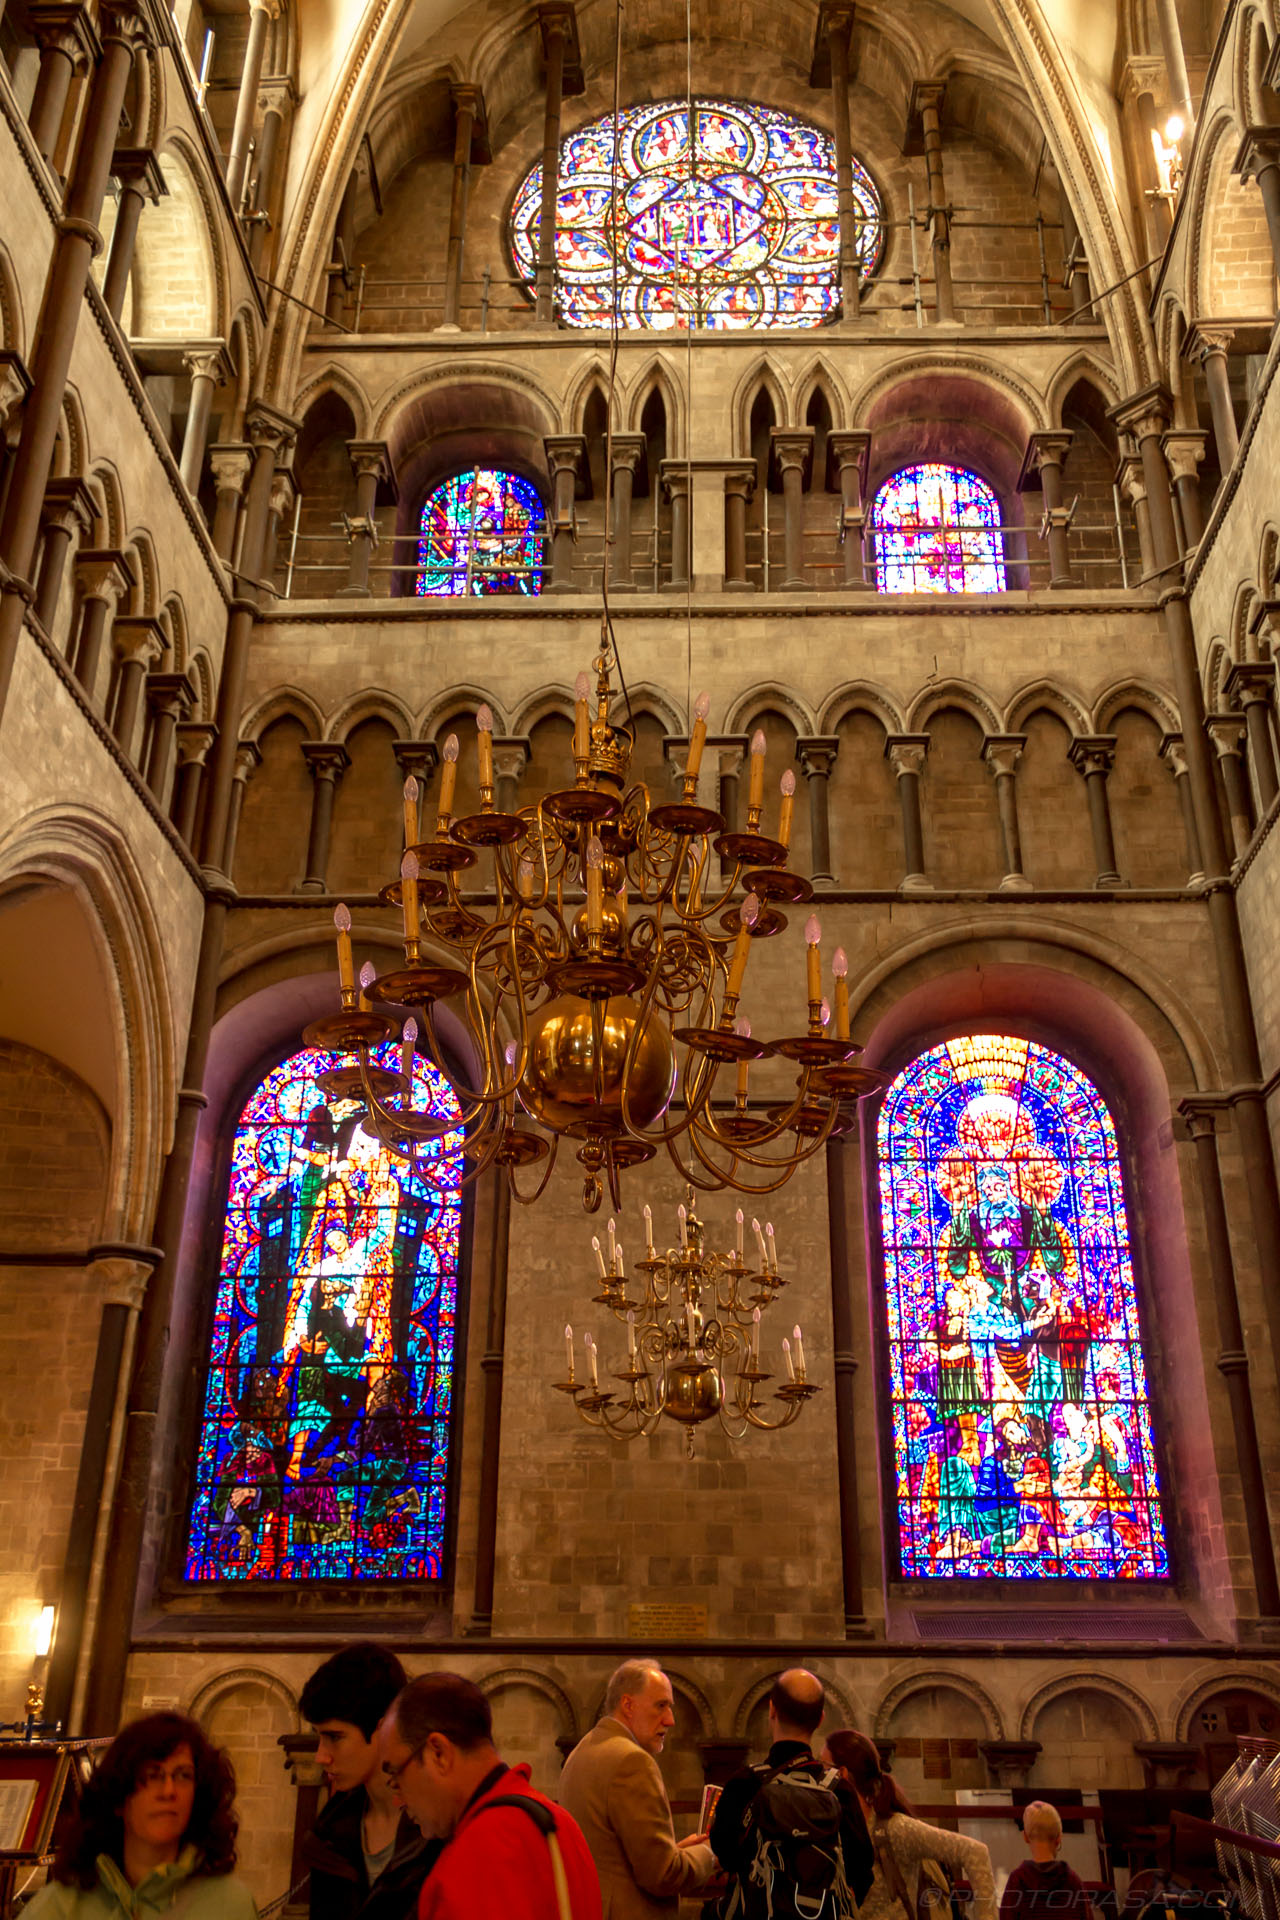 http://photorasa.com/canterbury-cathedral/north-east-transept-stained-glass-and-chandeliers/